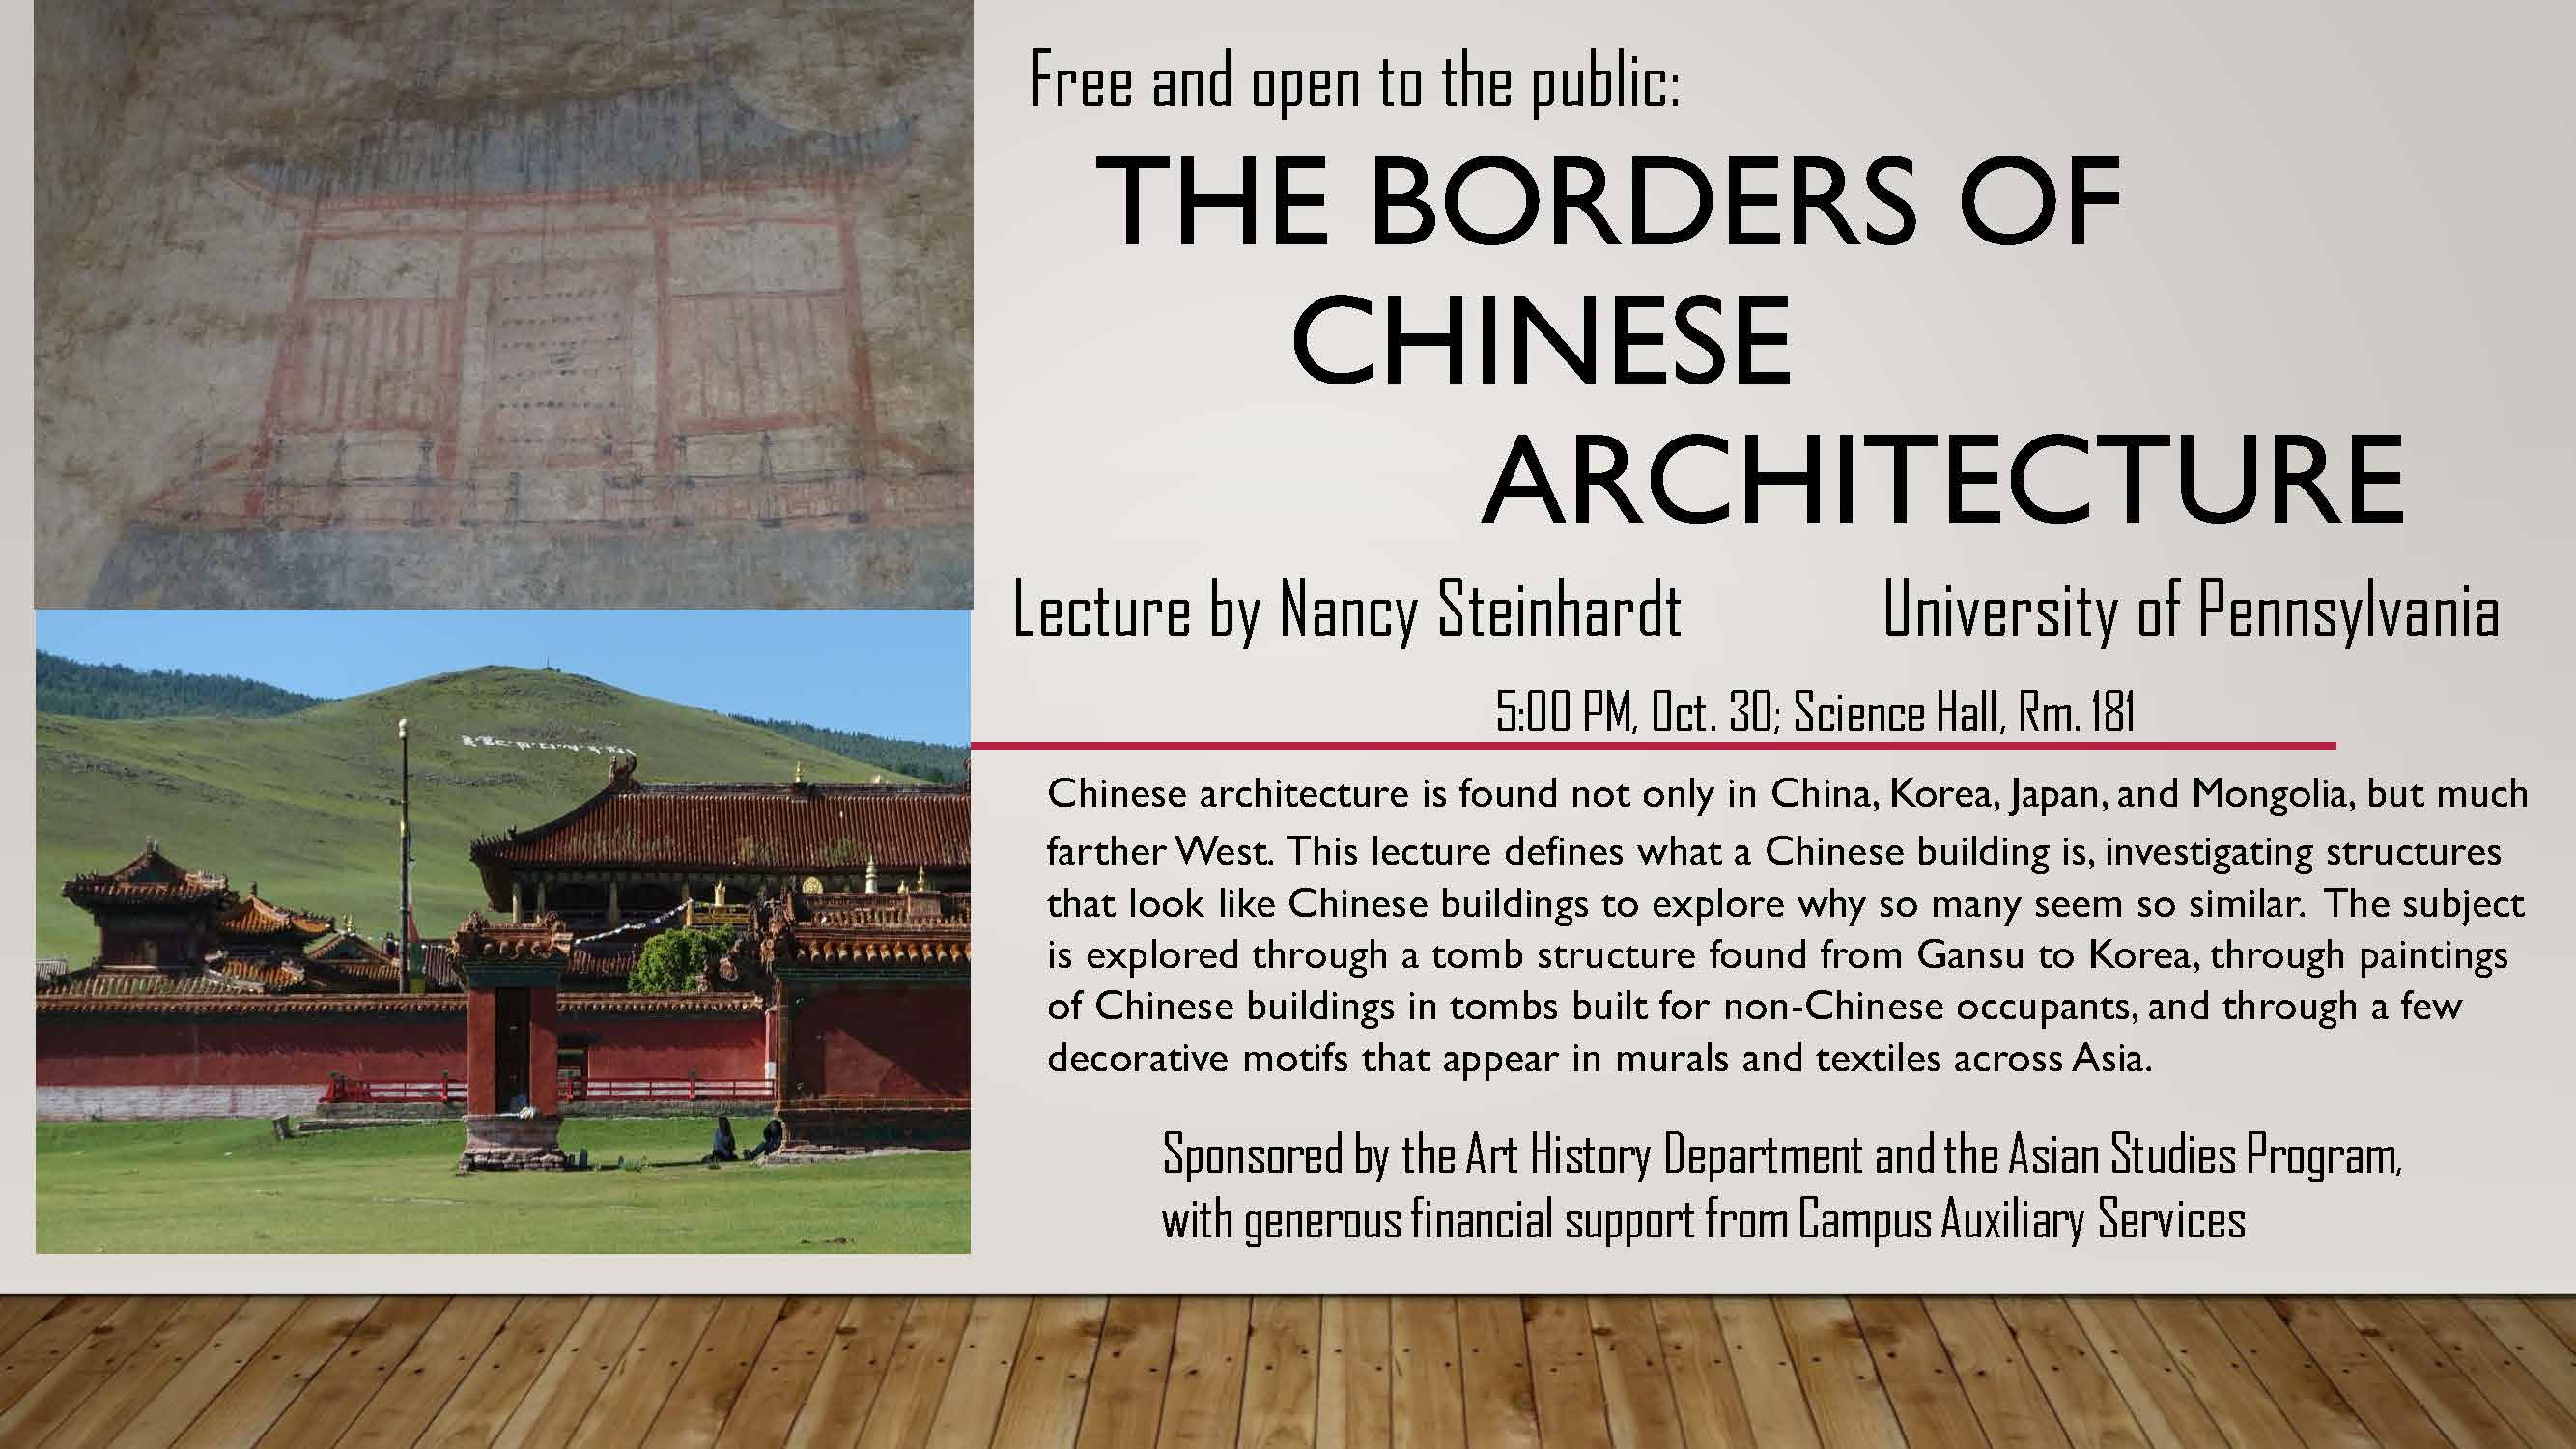 Poster for Prof. Nancy Steinhardt of The University of Pennsylvania's Talk on The Borders of Chinese Architecture